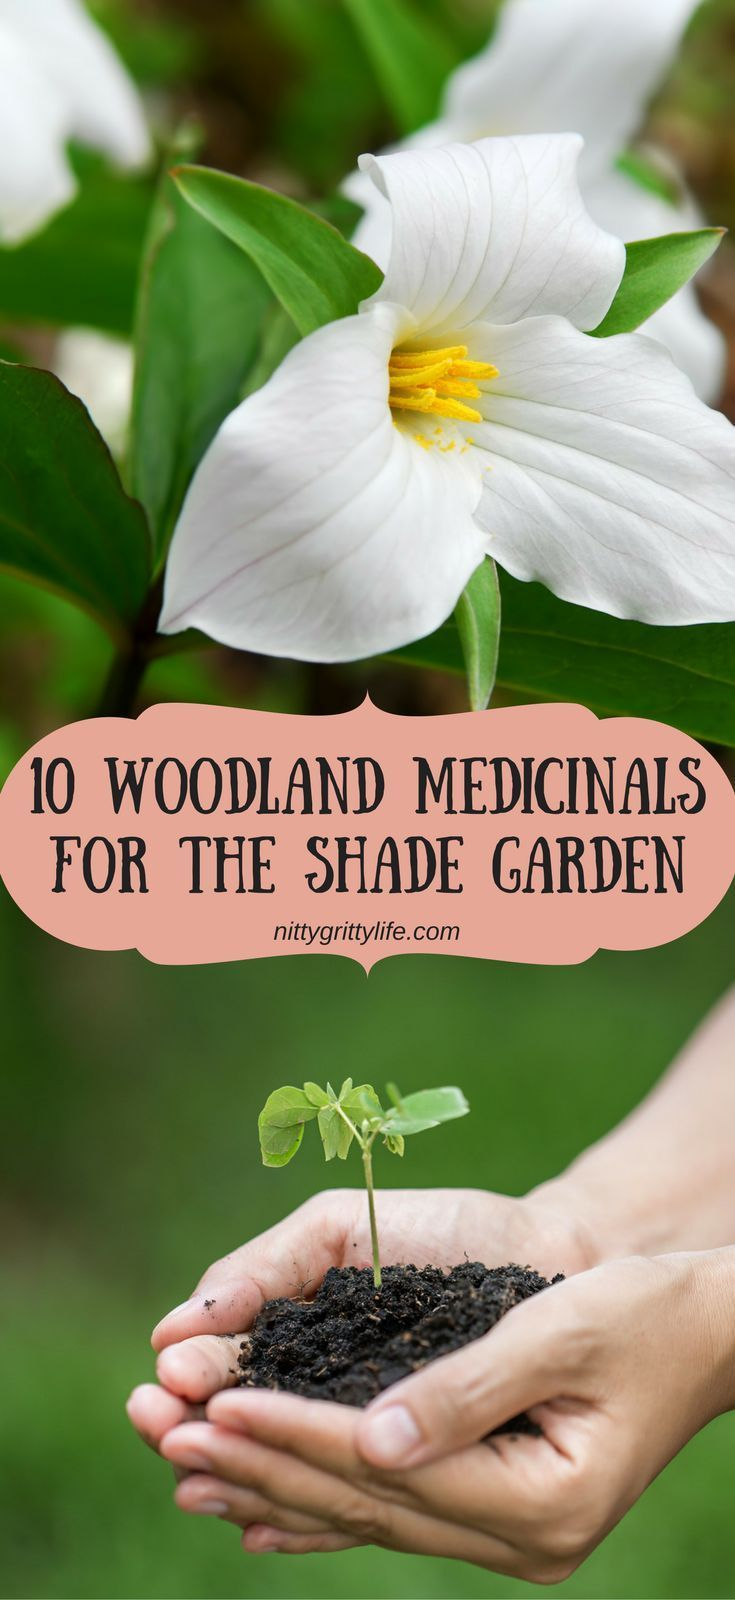 Holistic Landscaping 10 Woodland Medicinals for the Shade Garden is part of Shade garden Herbs - Plant your shade garden to these woodland medicinals and you will be pulling double duty by growing medicine and supporting conservation efforts!